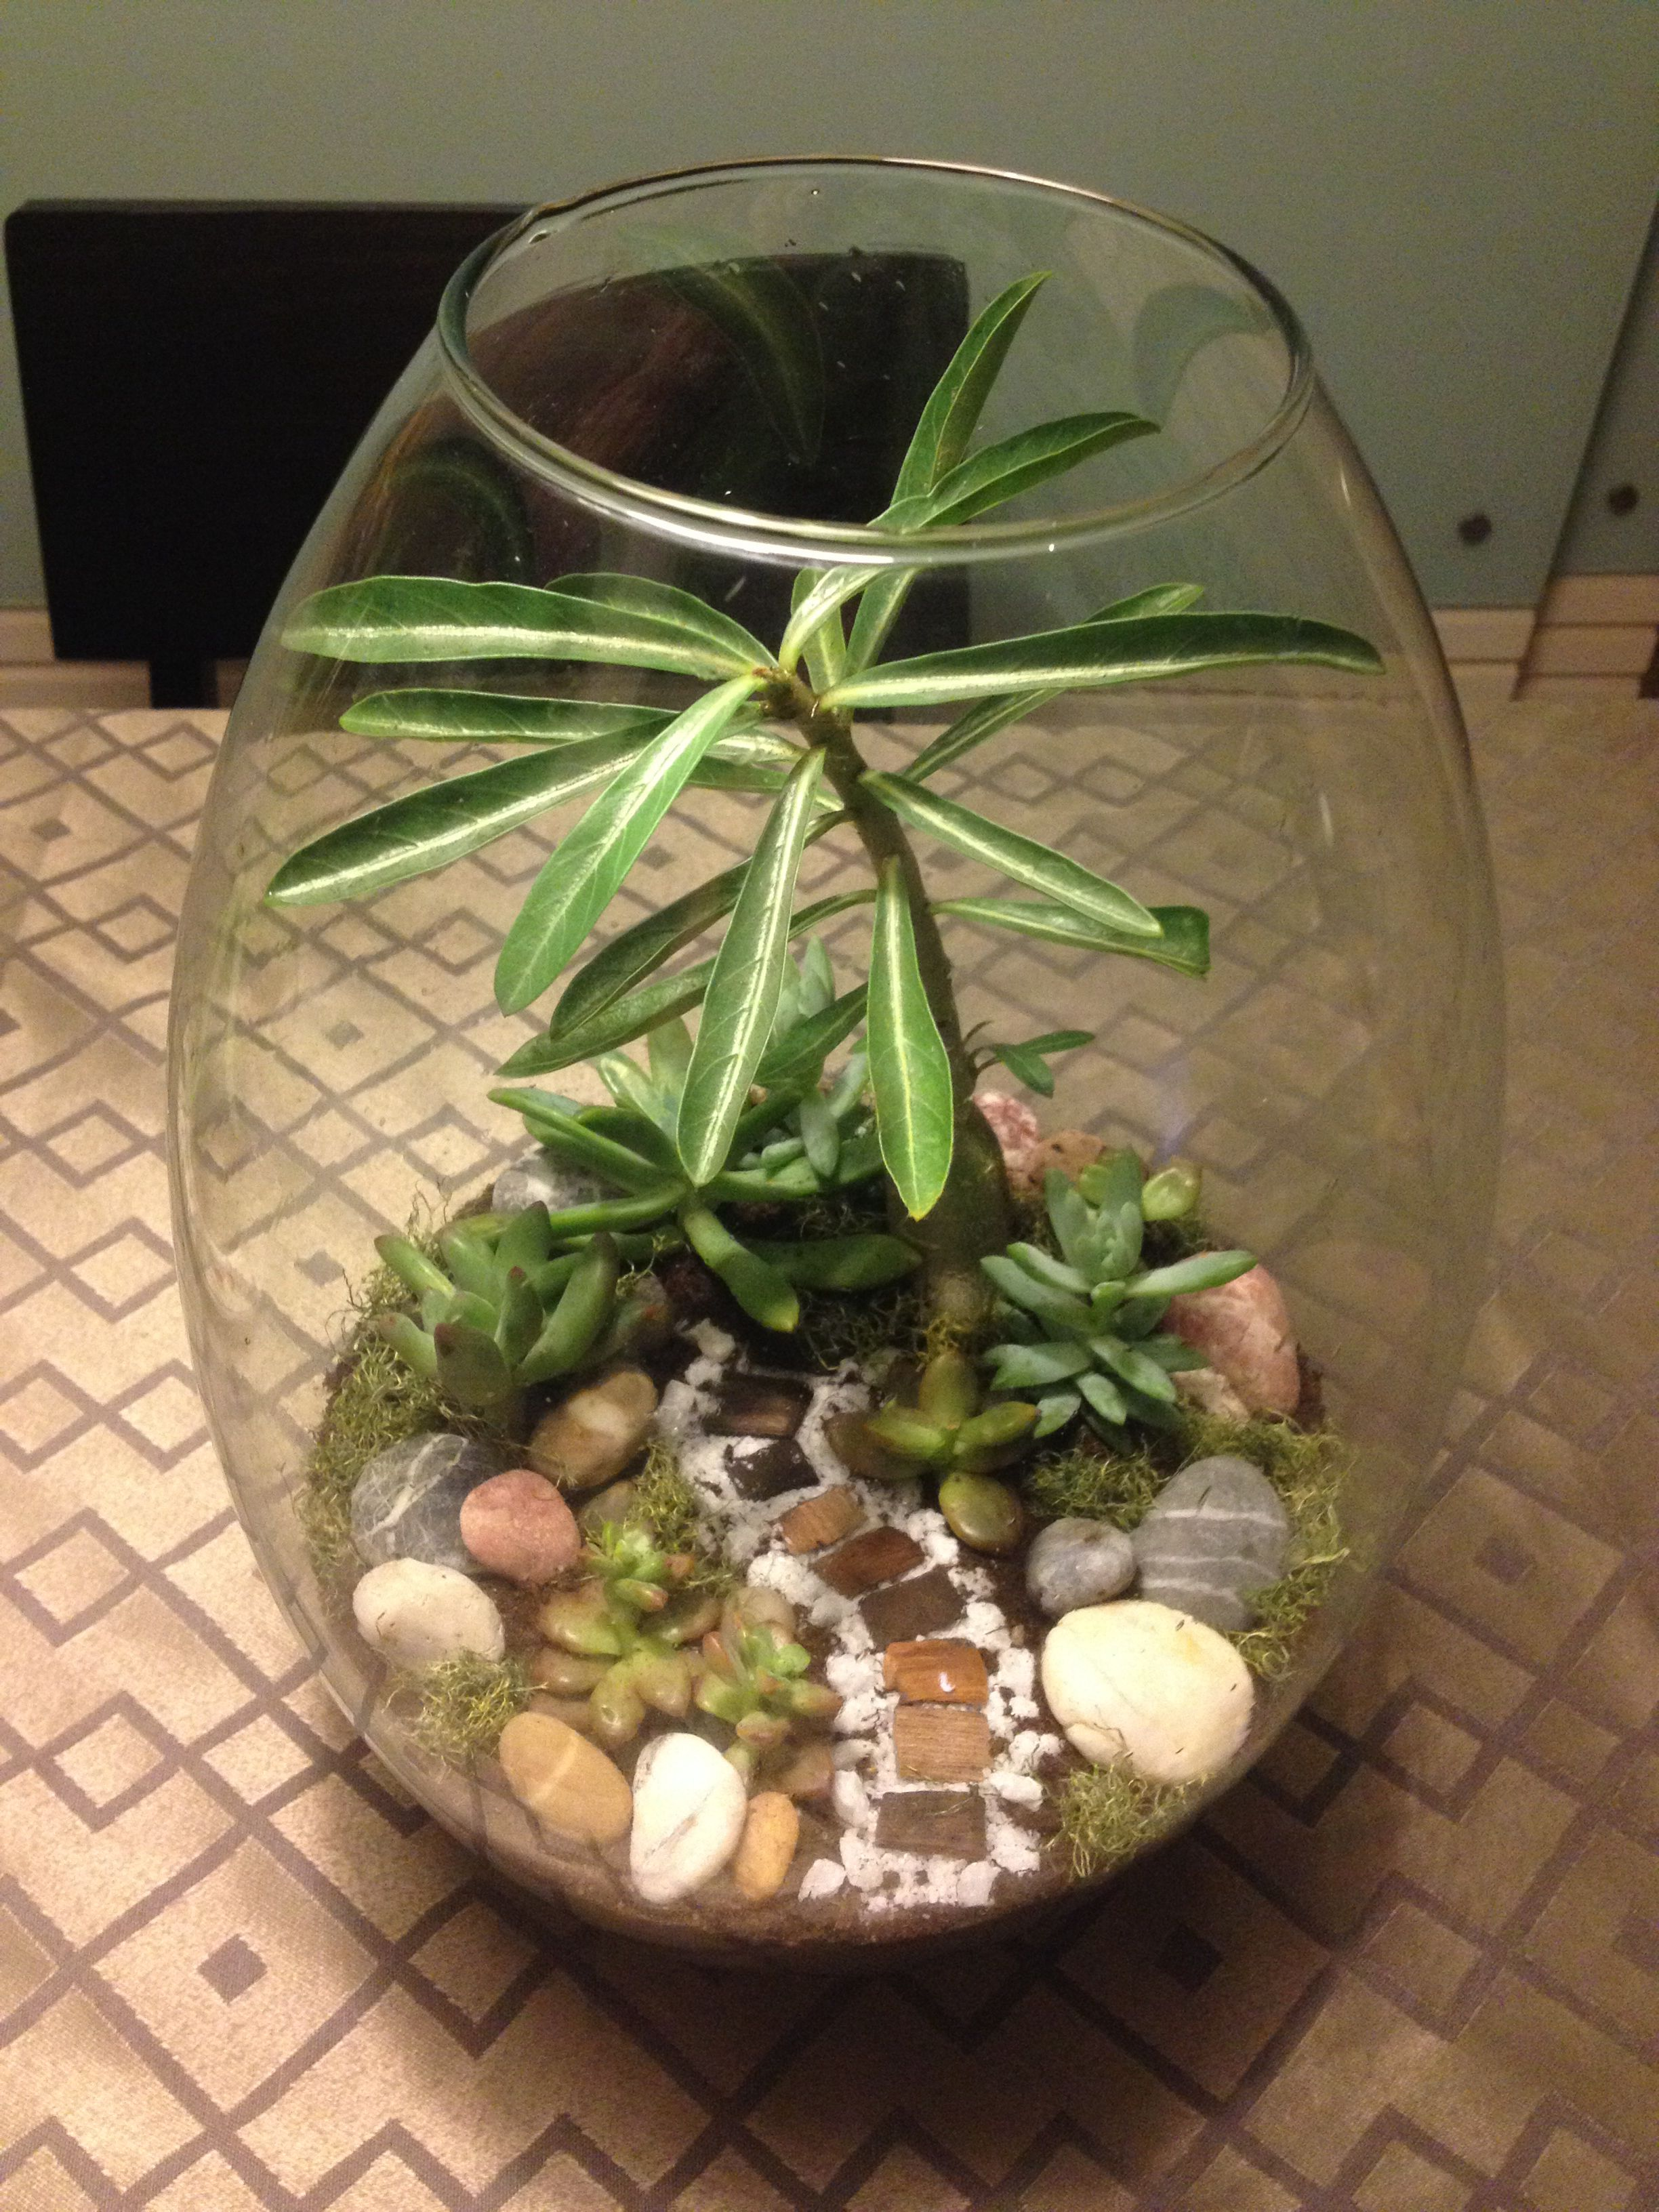 My Own Mini Garden Terrarium With A Desert Rose And Succulents